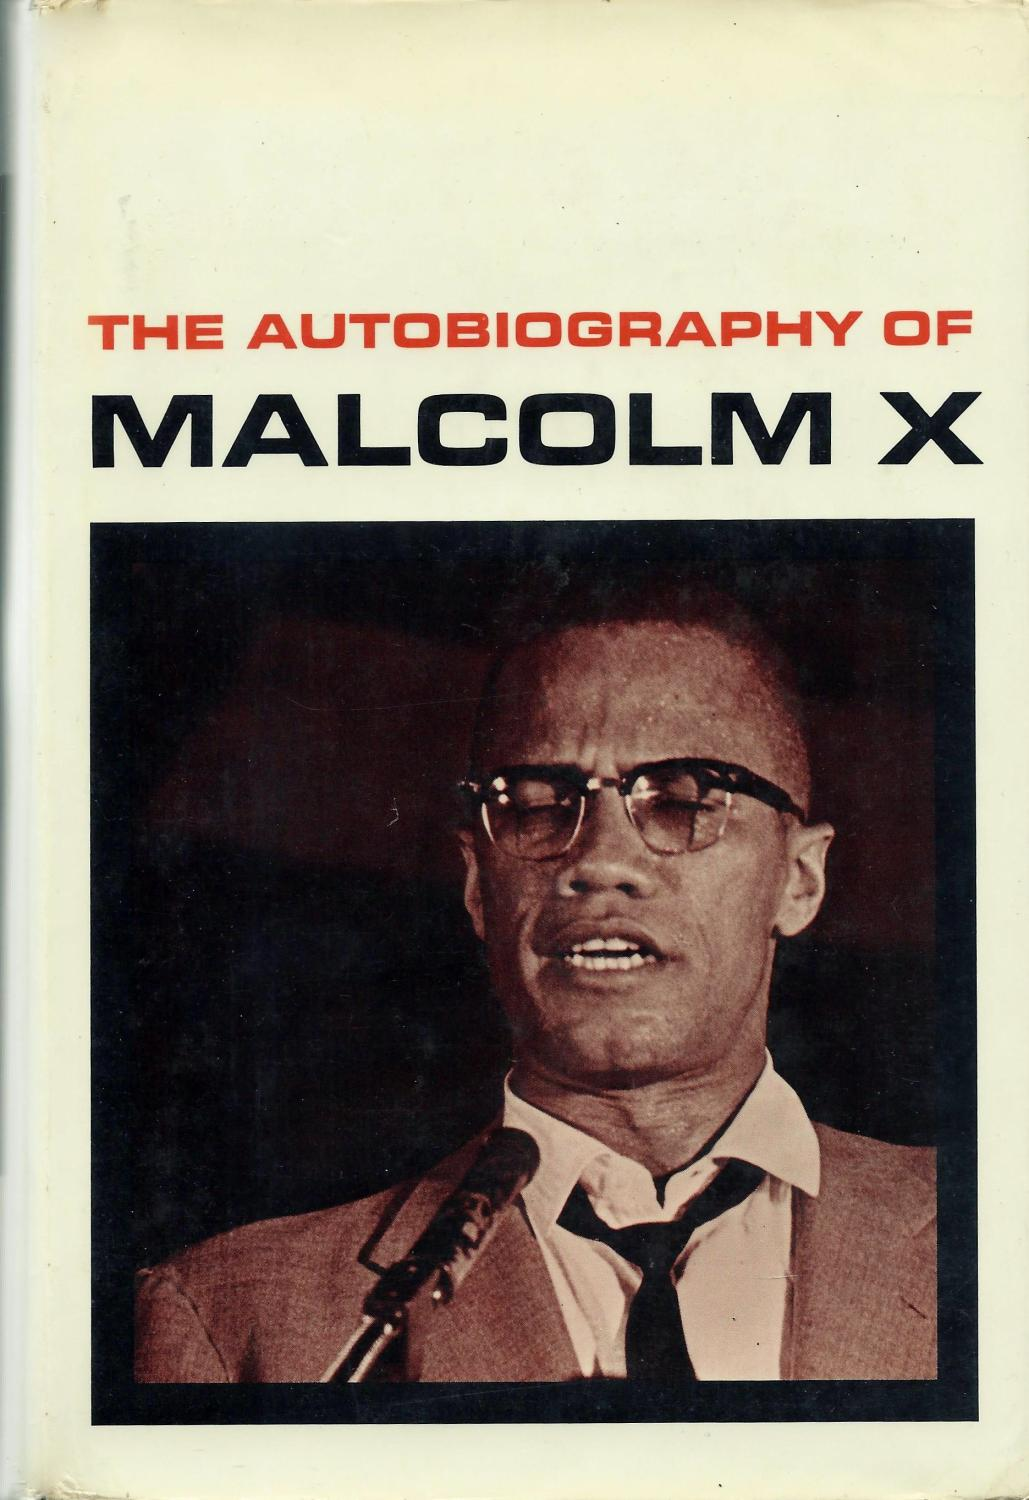 The Autobiography of Malcolm X - Wikipedia